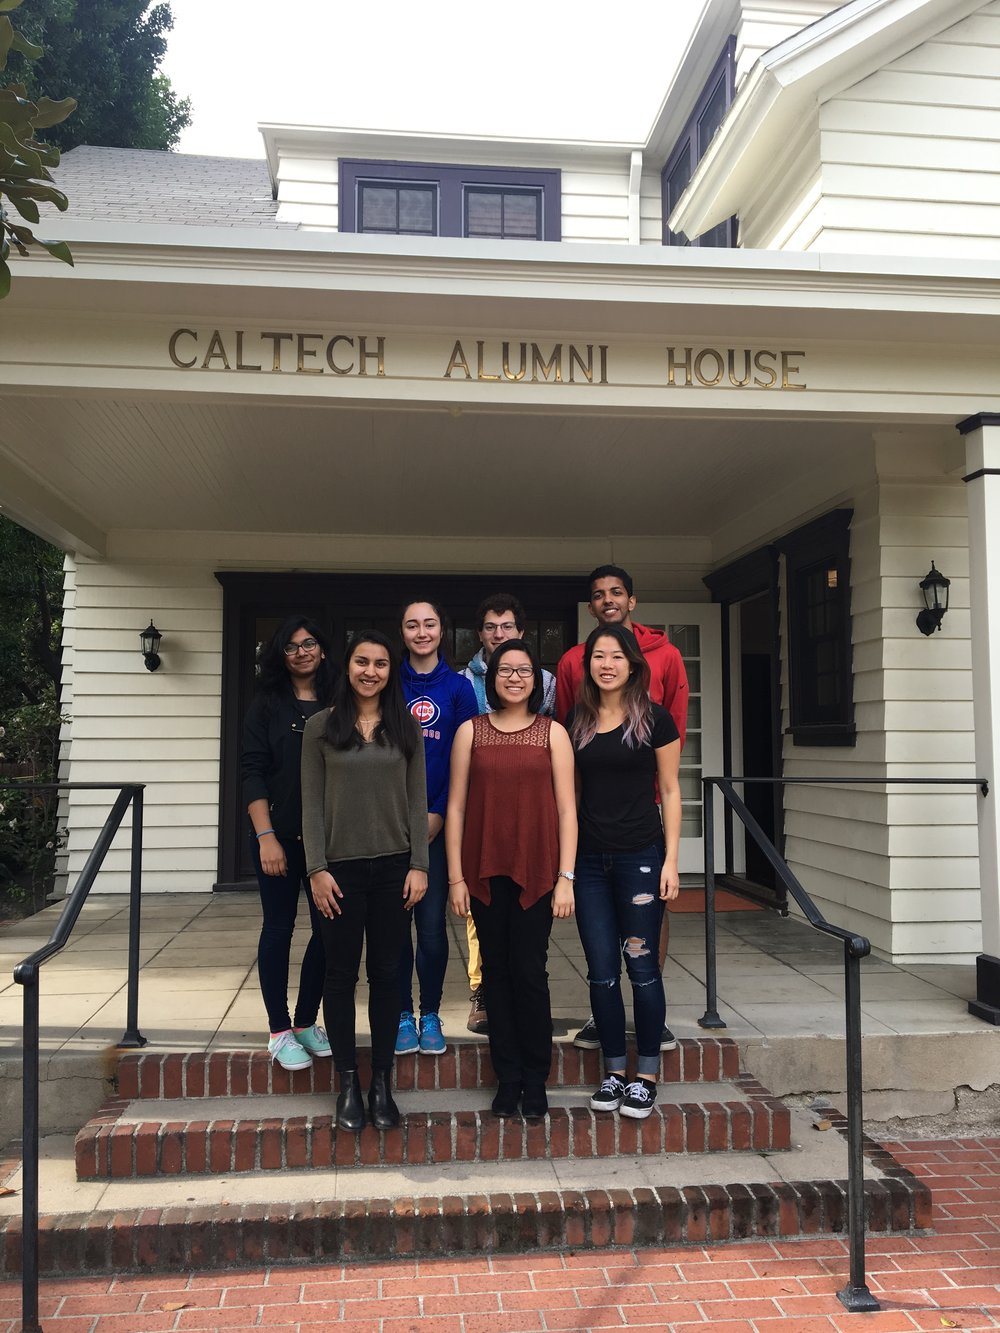 Undergraduate Student Alumni Committee. Top row: Tanvi Gupta, Liana Merk, Jules Oppenheim, and Sarang Mittal. Bottom row: Ruchi Pandya, Diandra Almasco, and Sarah Cai. Not pictured: Caroline Atyeo, Robin Brown, Sunny Cui, Ciara Ordner, Vaishnavi Shrivastava, Praful Vasireddy, and Daniel Xu.